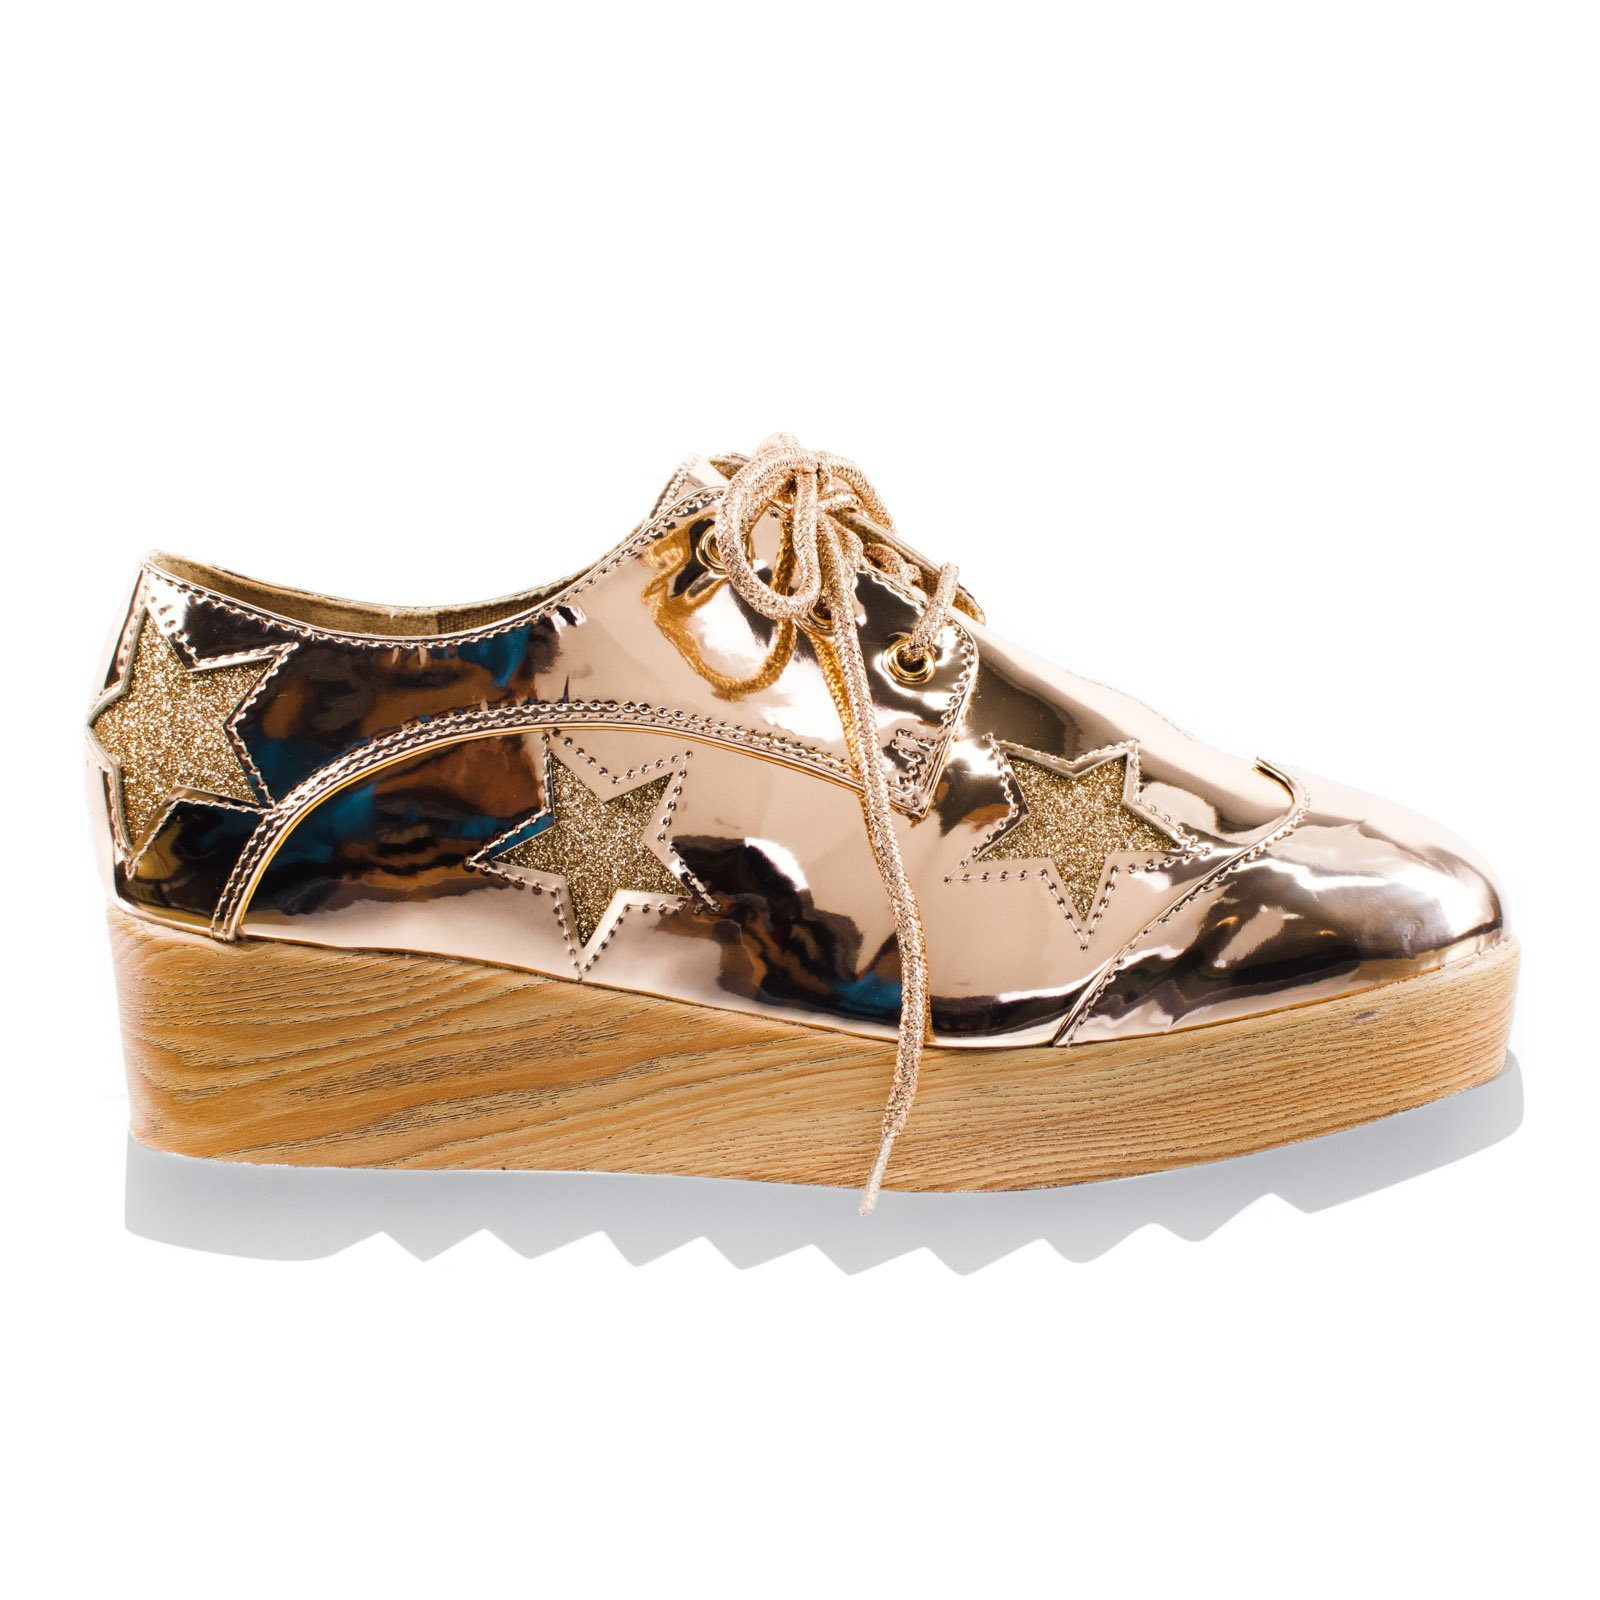 Besty02 Rose Gold 90's Wooden Platform Lug Sole Creepers Oxford Brogue w Glitter Star -7